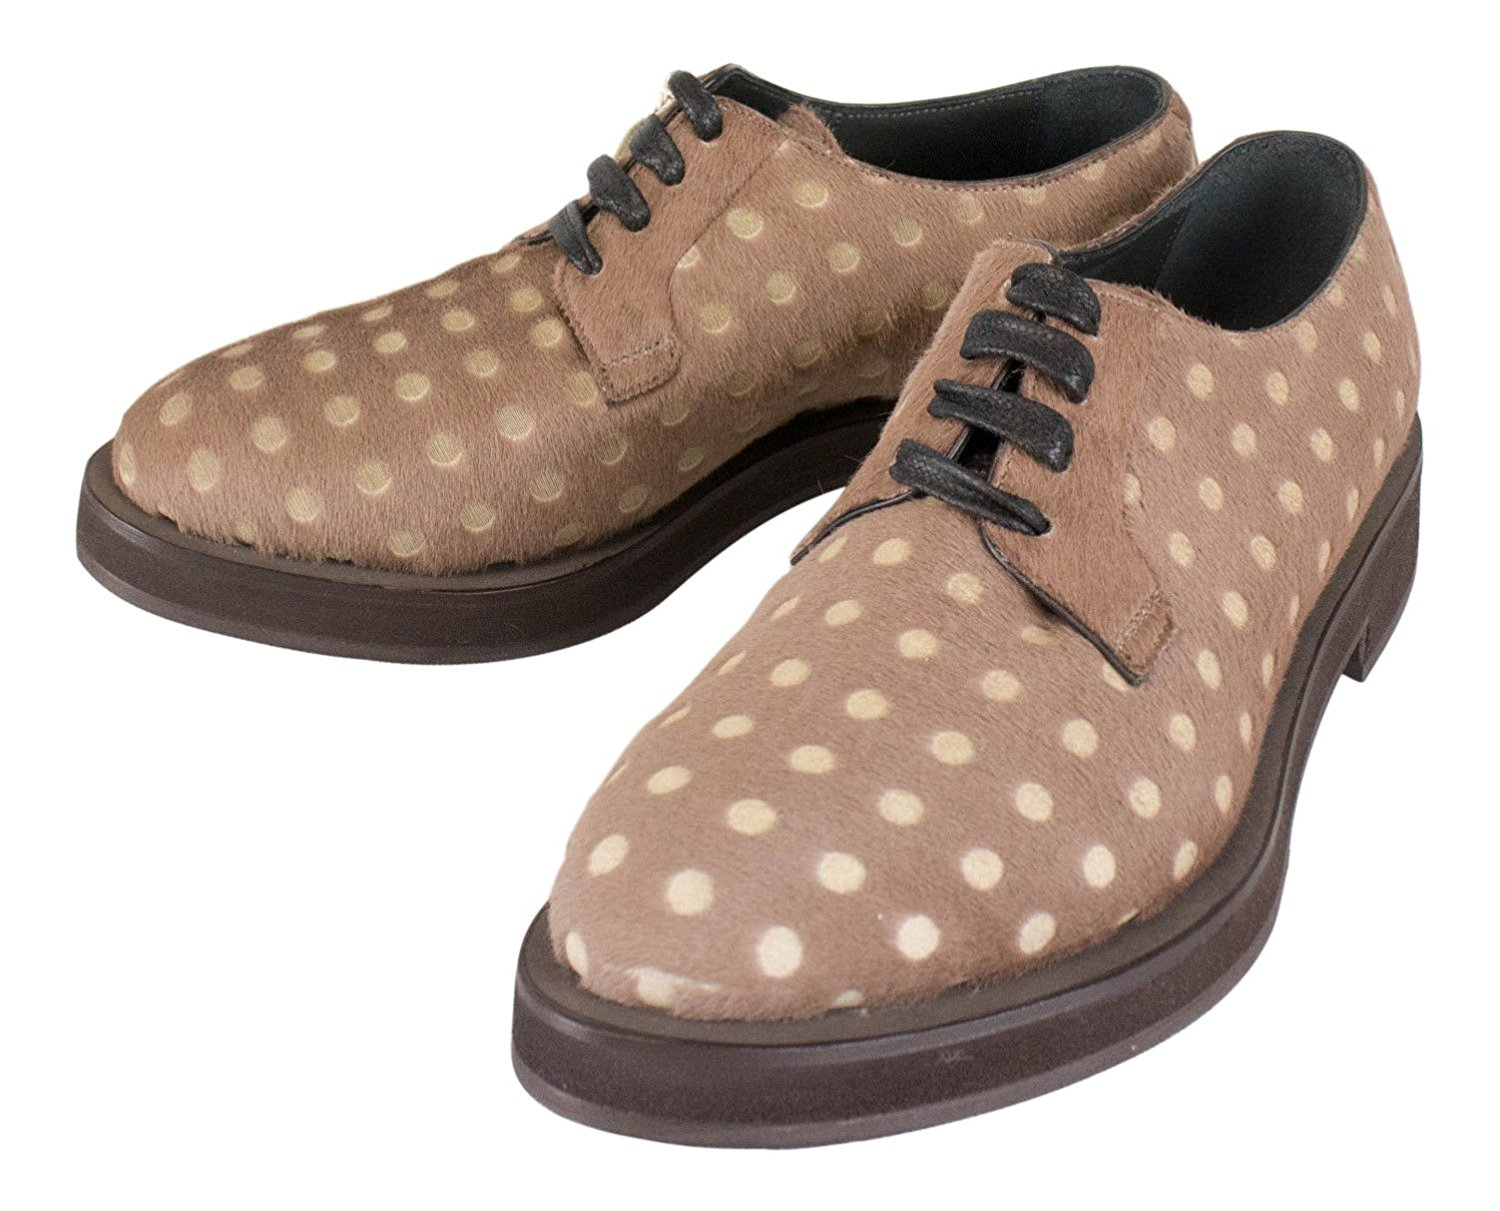 c0adf8b7e85b37 Get Quotations · Brunello Cucinelli Brown Polka Dot Pony Fur Oxford Shoes  Size 37.5 7.5